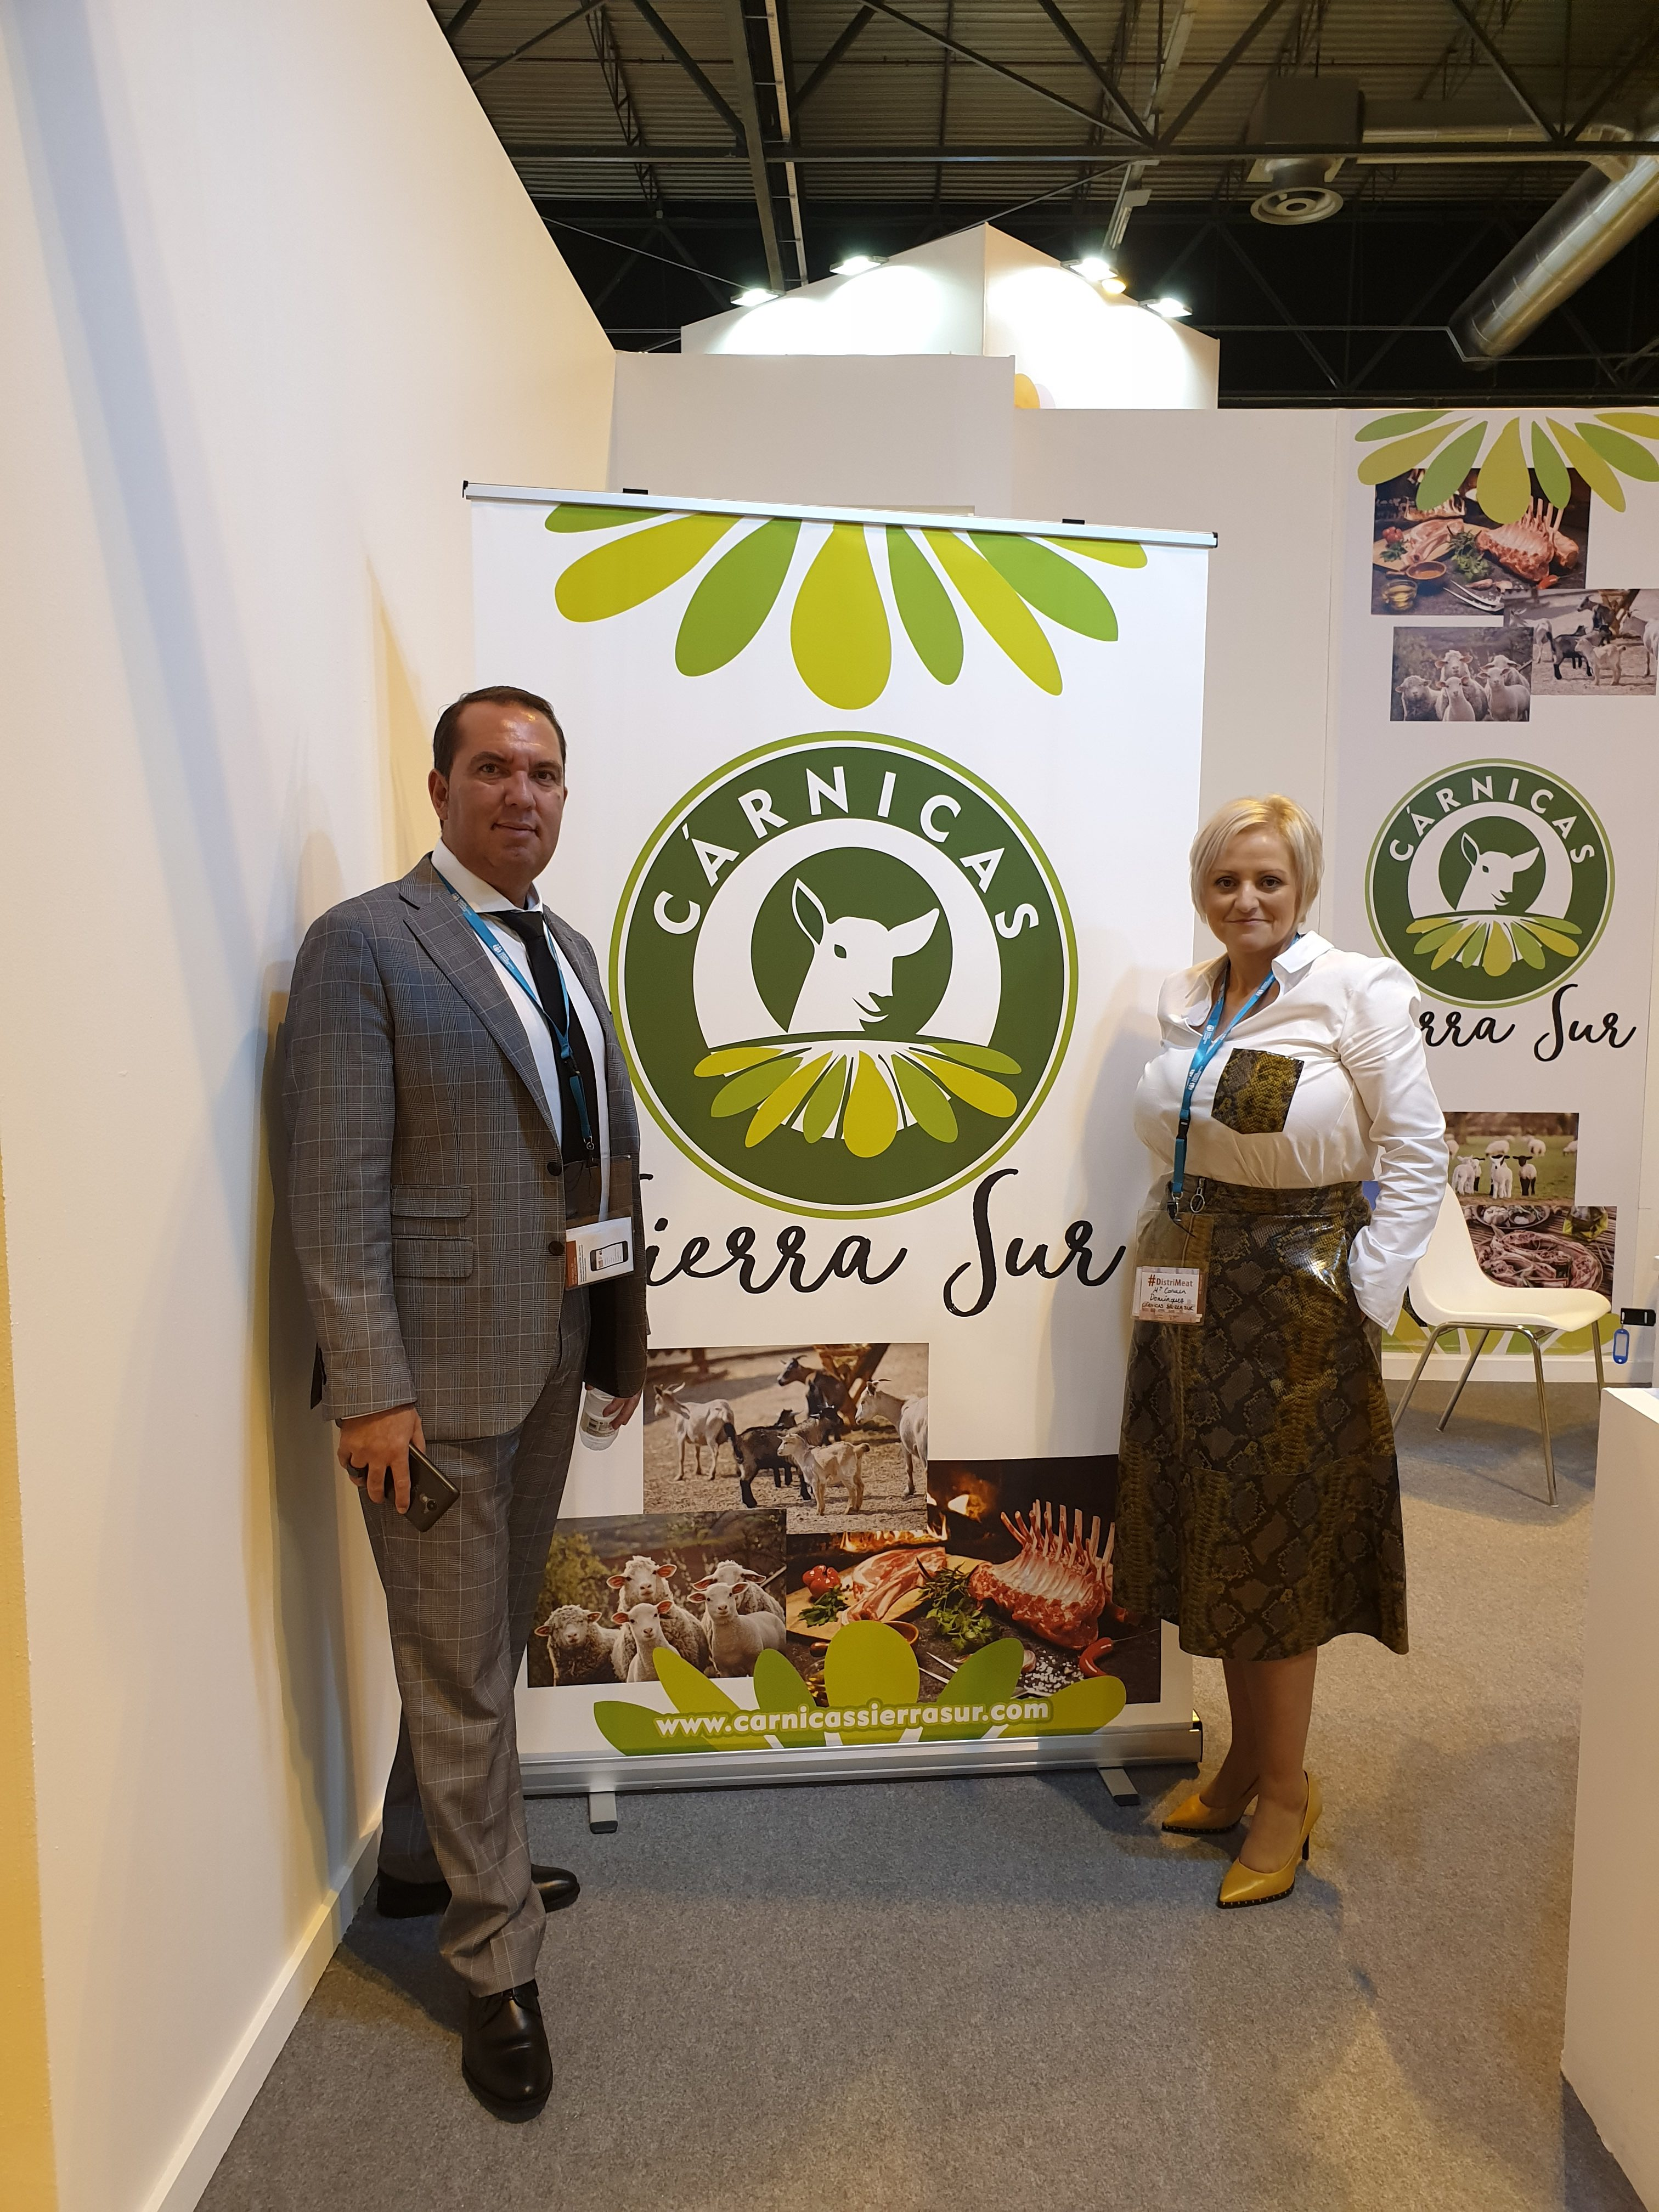 Cárnicas Sierra Sur Will Show Its Solidity And Solvency At Meat Attraction